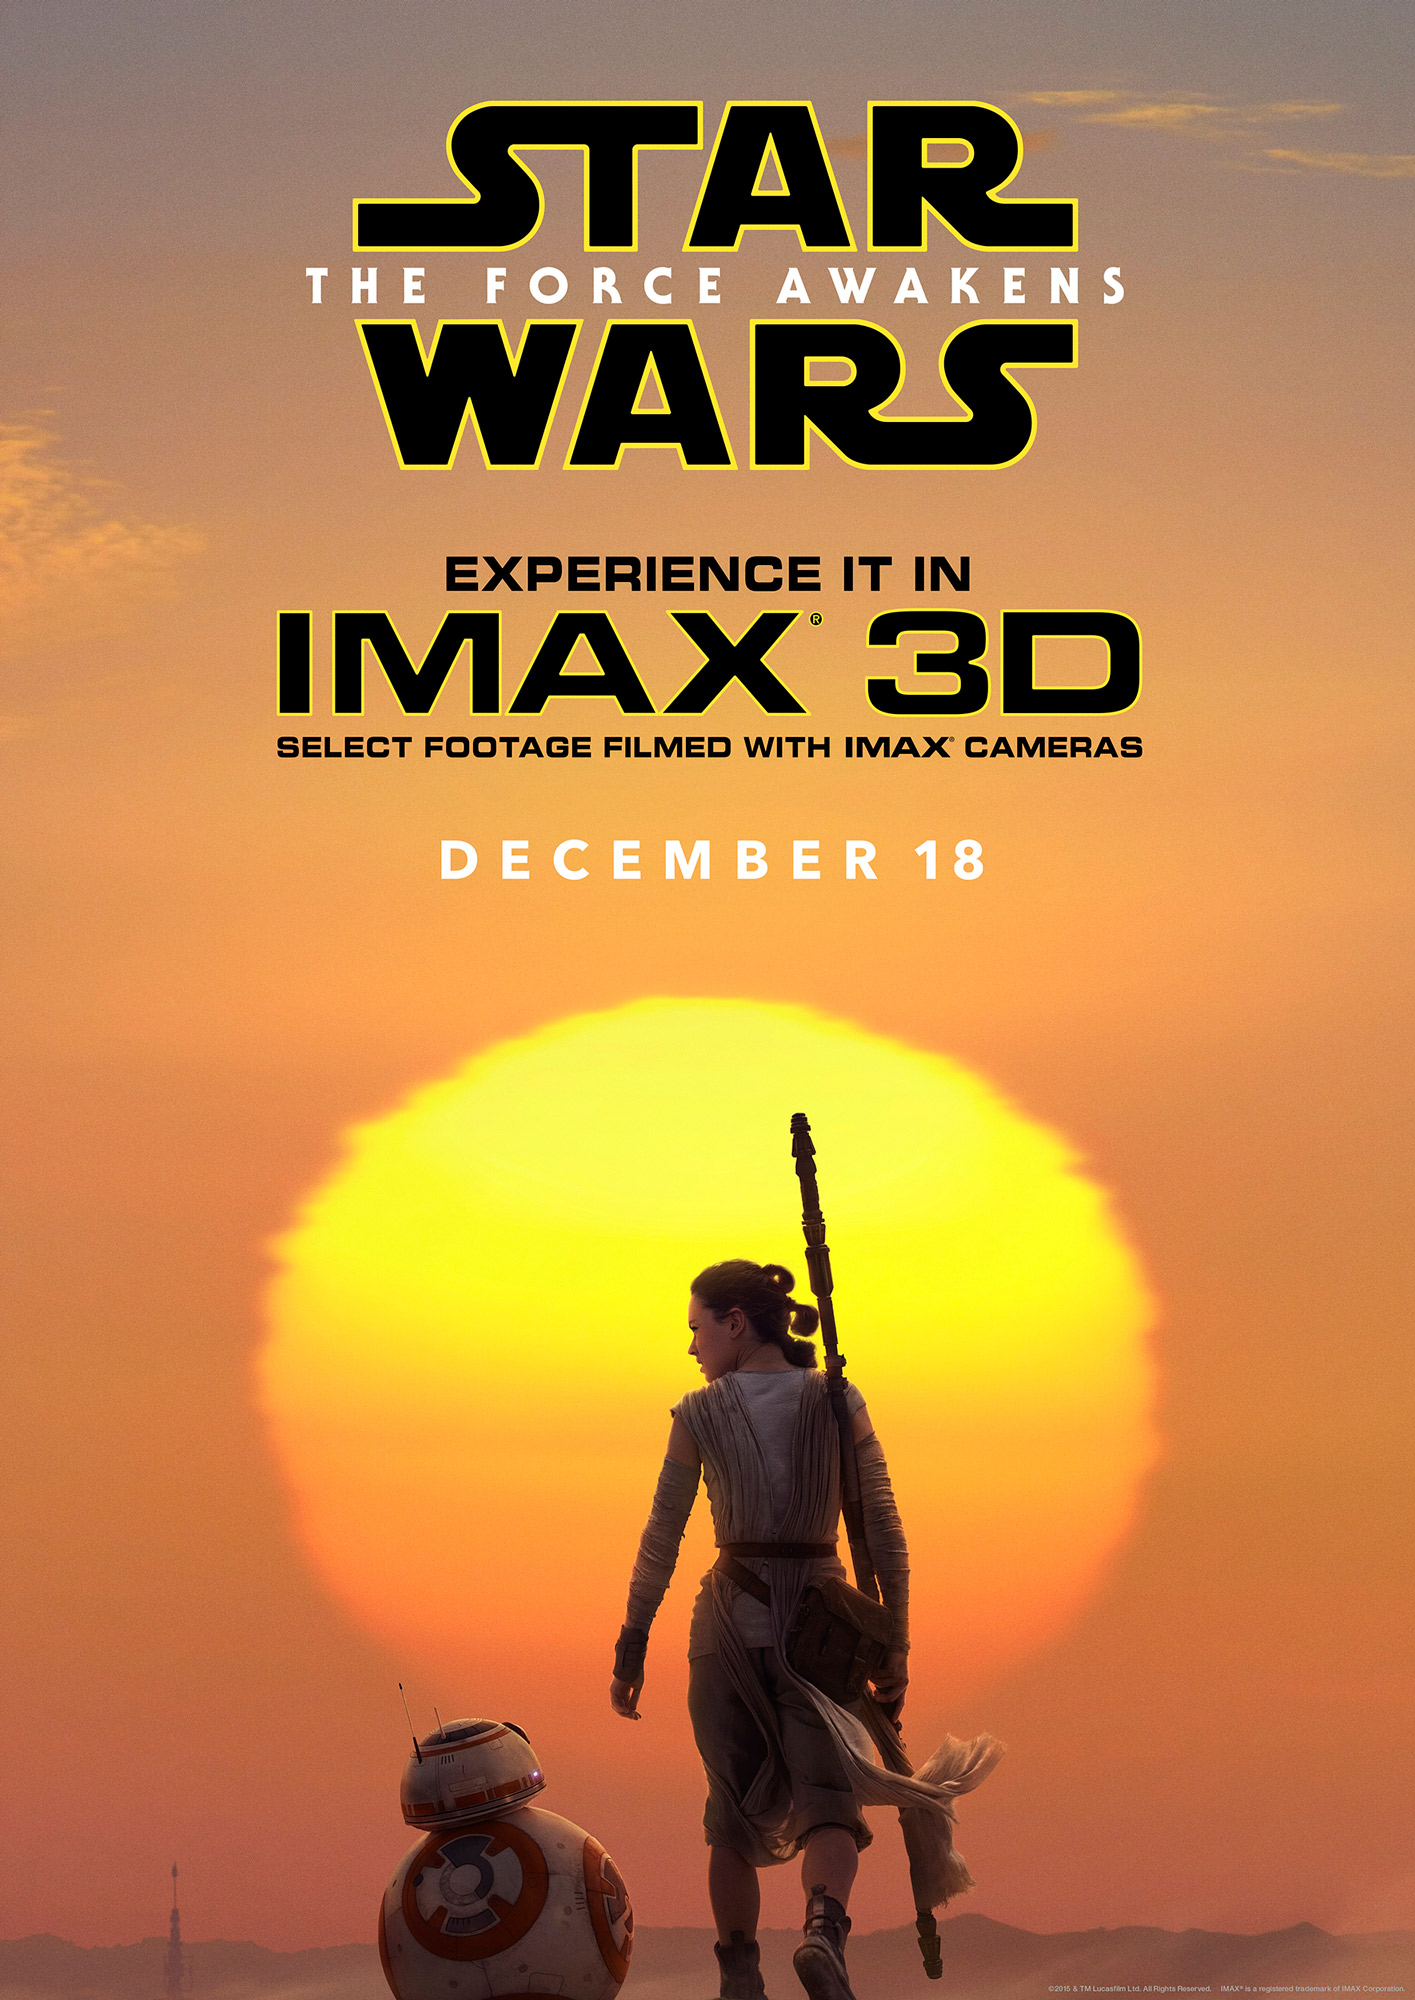 take a first look at the star wars the force awakens imax 3d poster